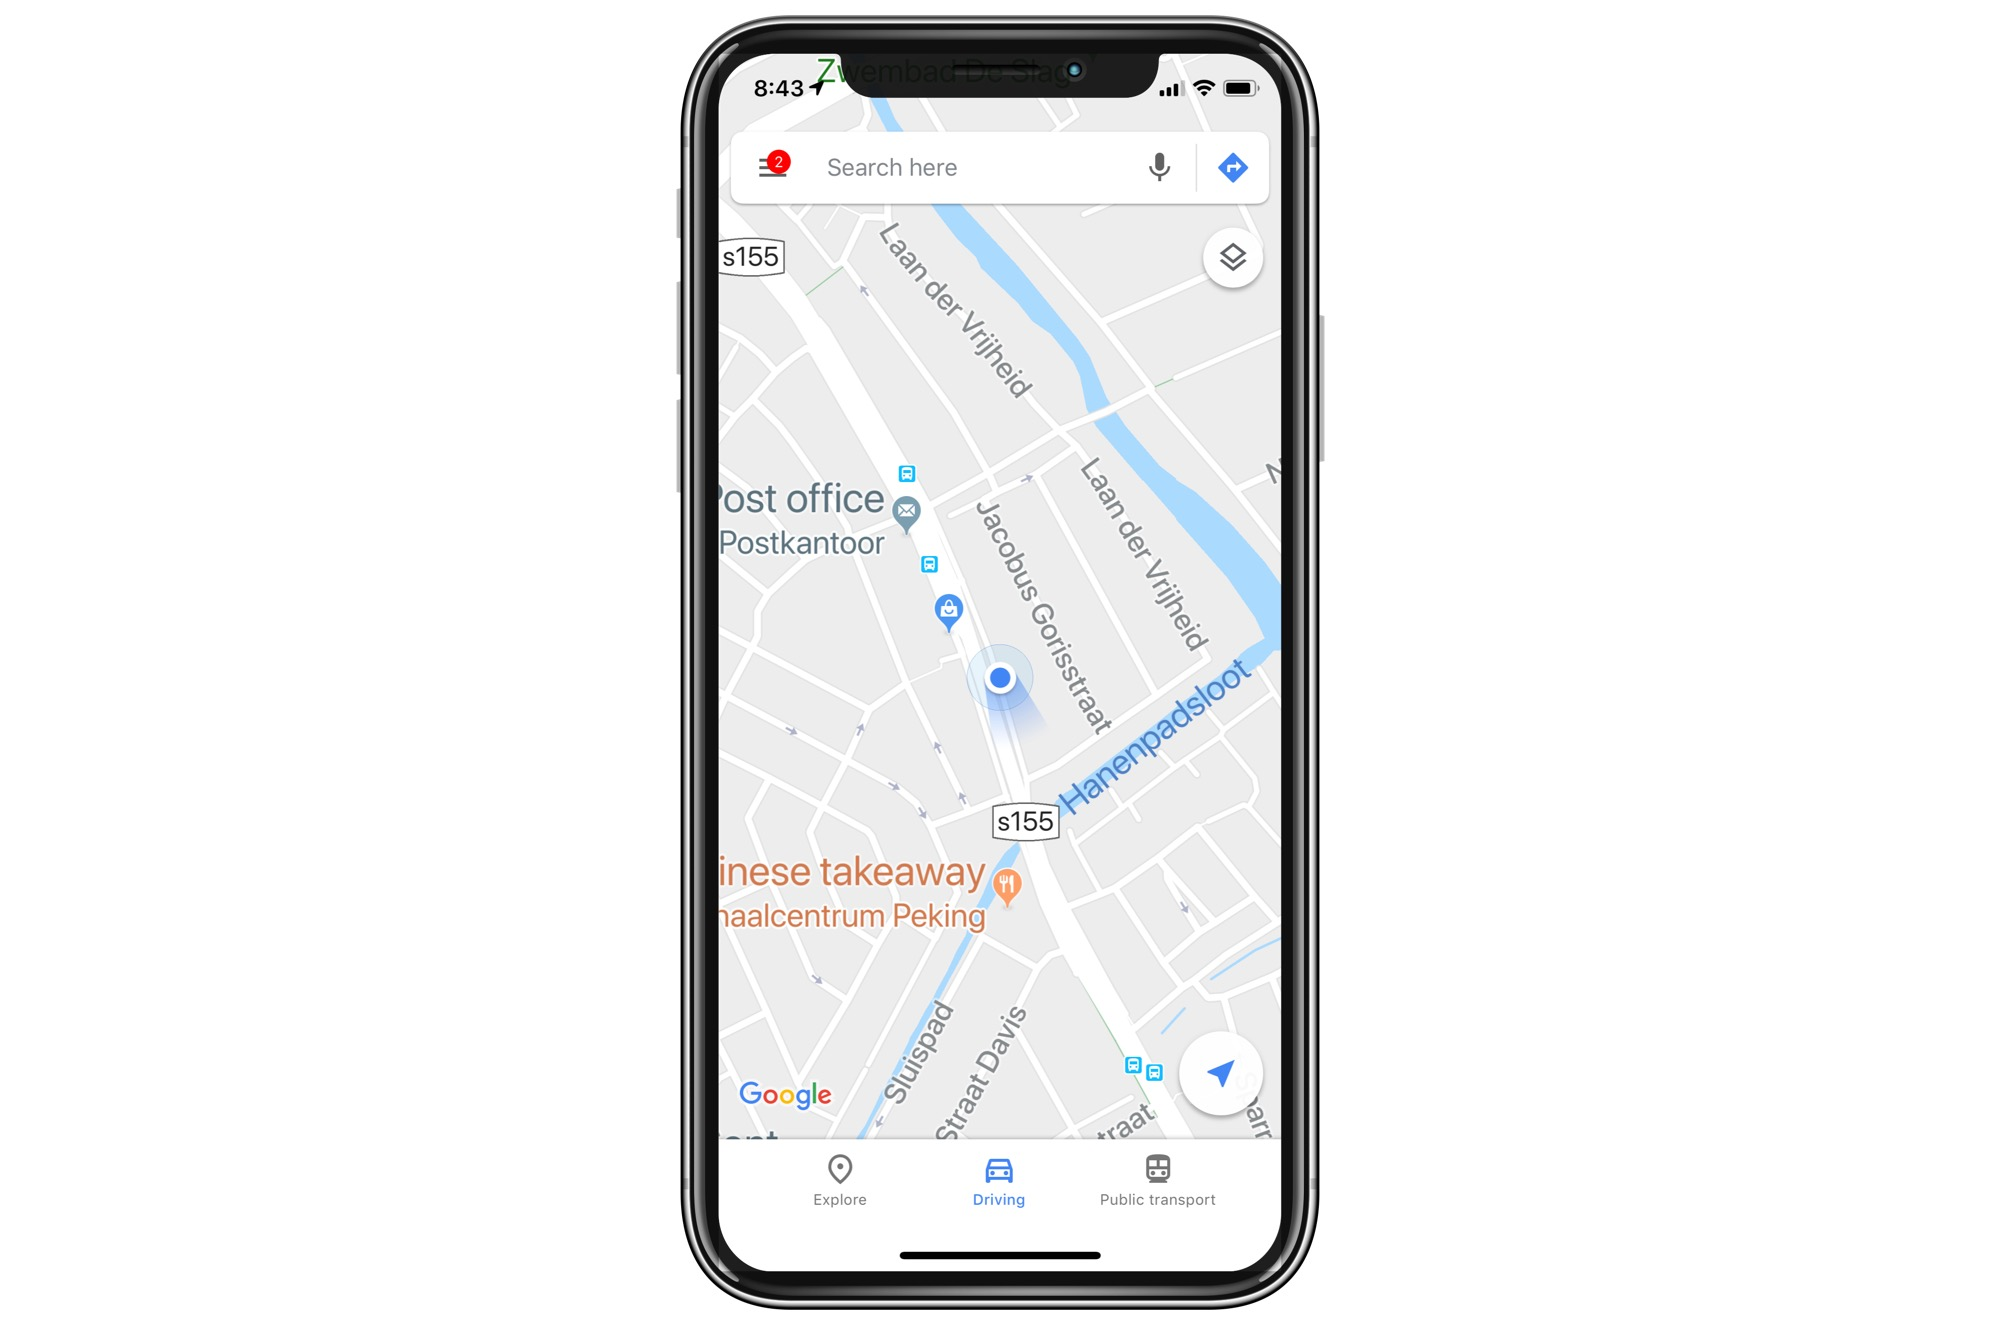 https://www.macfreak.nl/modules/news/images/zArt.GoogleMaps-iPhoneX.jpeg